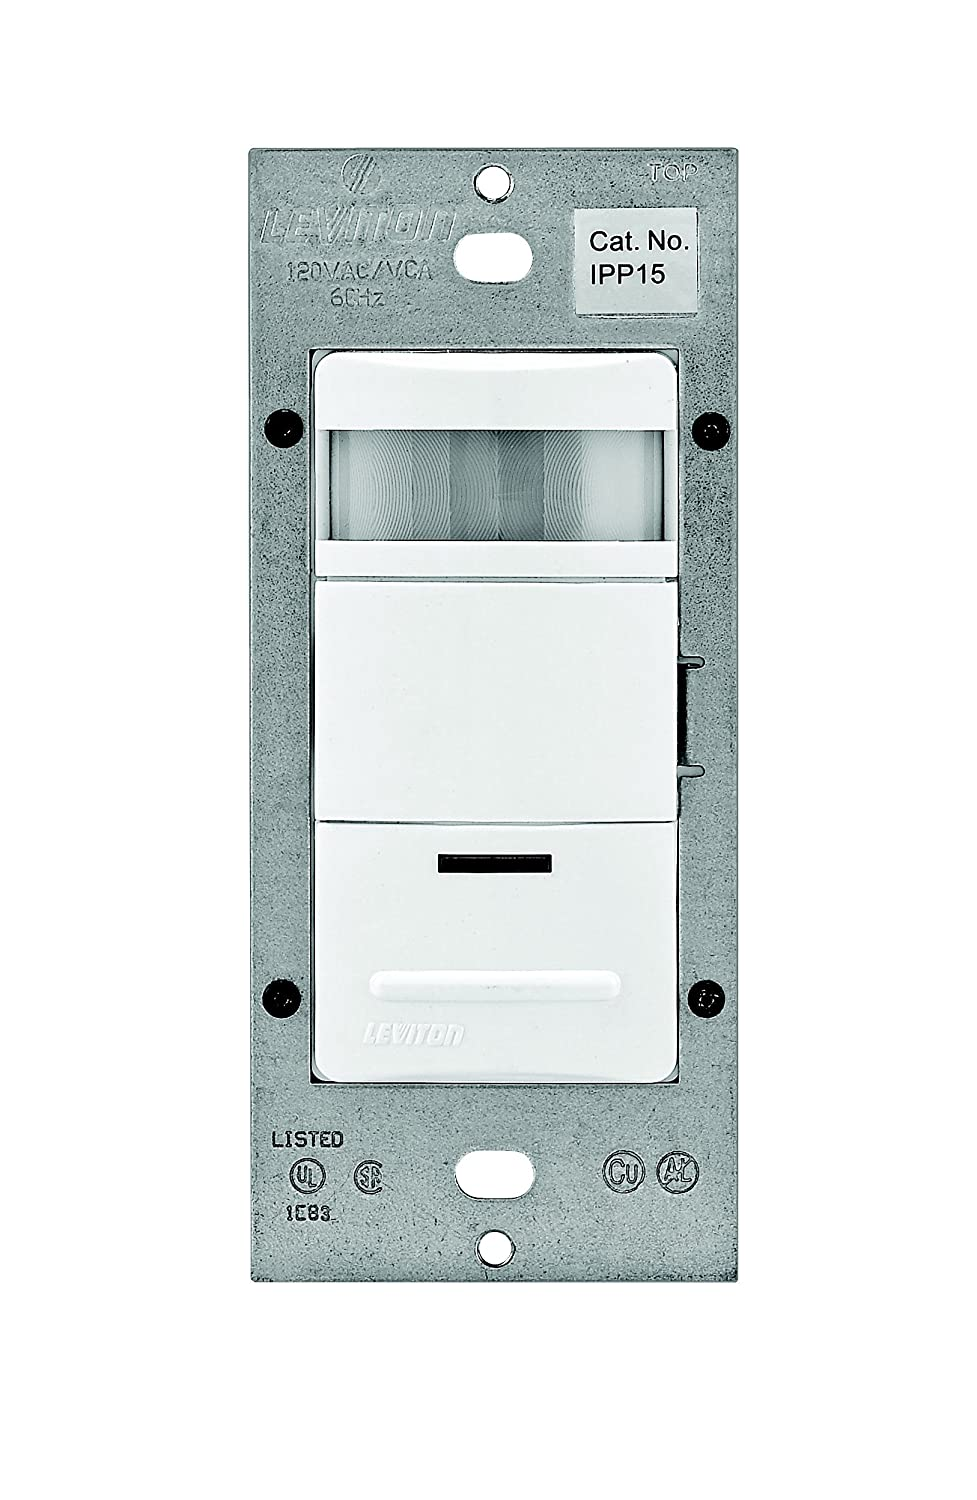 Wiring Leviton Light Switches With Jumper - House Wiring Diagram ...